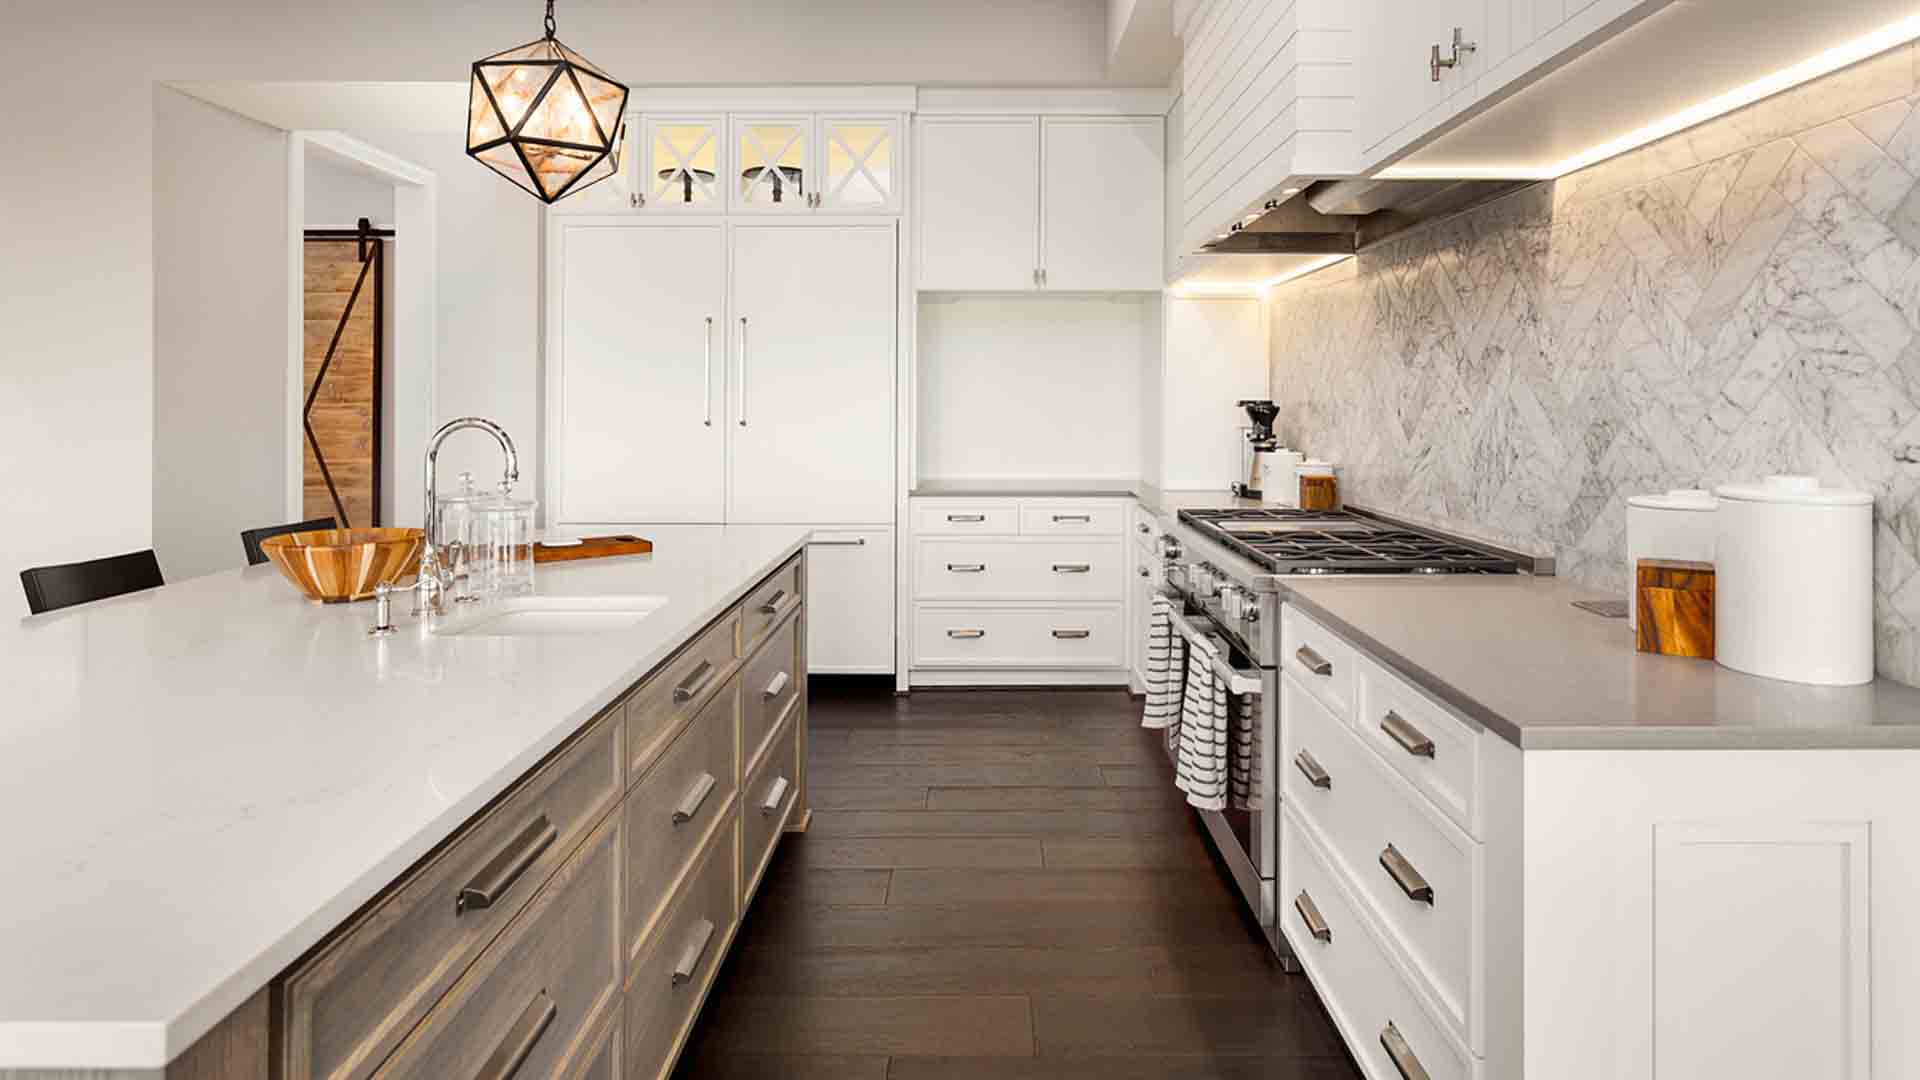 Thermador Appliance Repair Service Seattle | Thermador Appliance Repair Pros